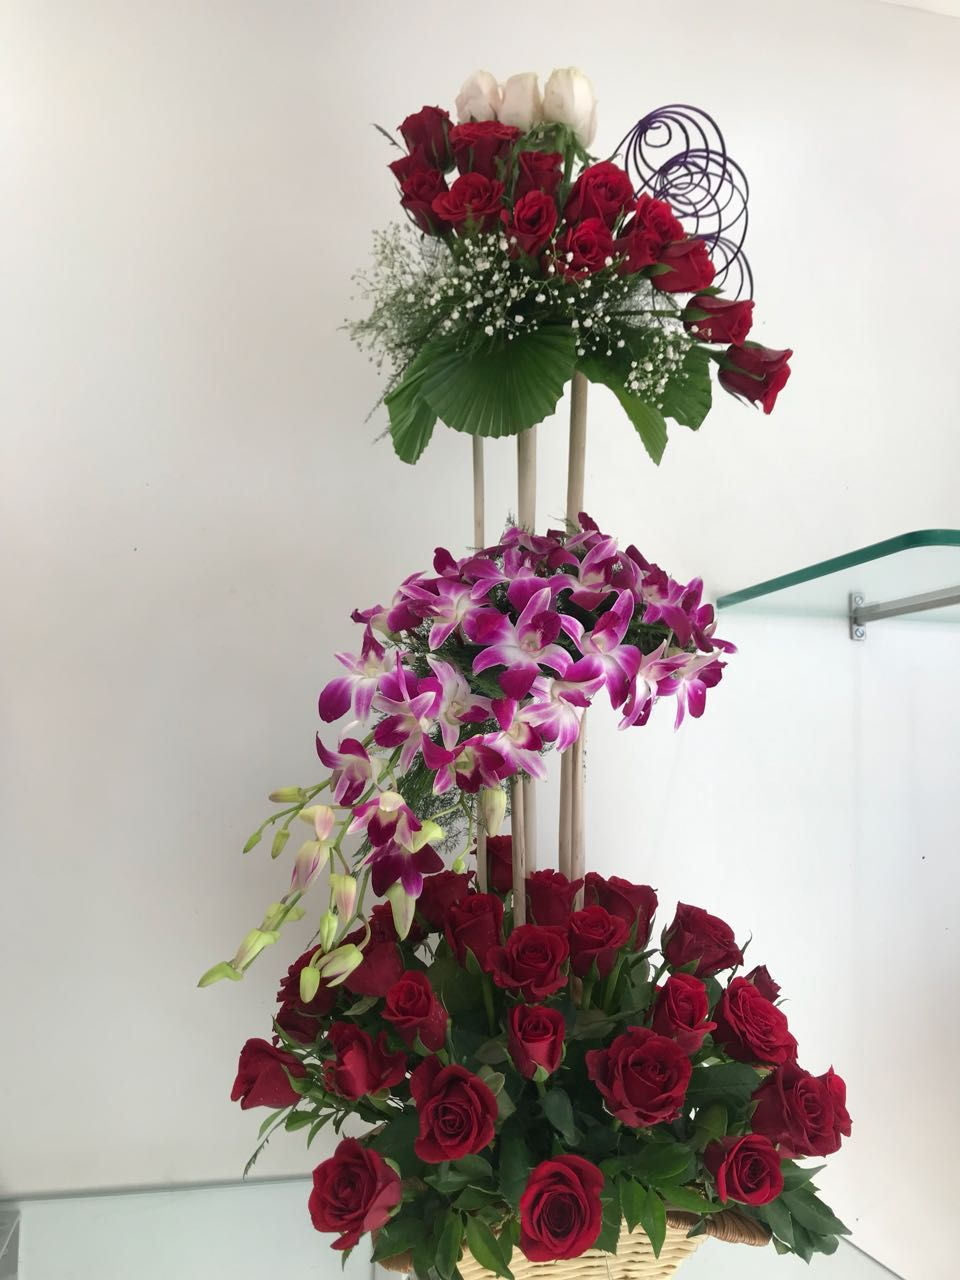 Nice blog 7 most popular valentines day flowers with meaning nice blog 7 most popular valentines day flowers with meaning valentinesdayflowers valentinesdayflowersonline izmirmasajfo